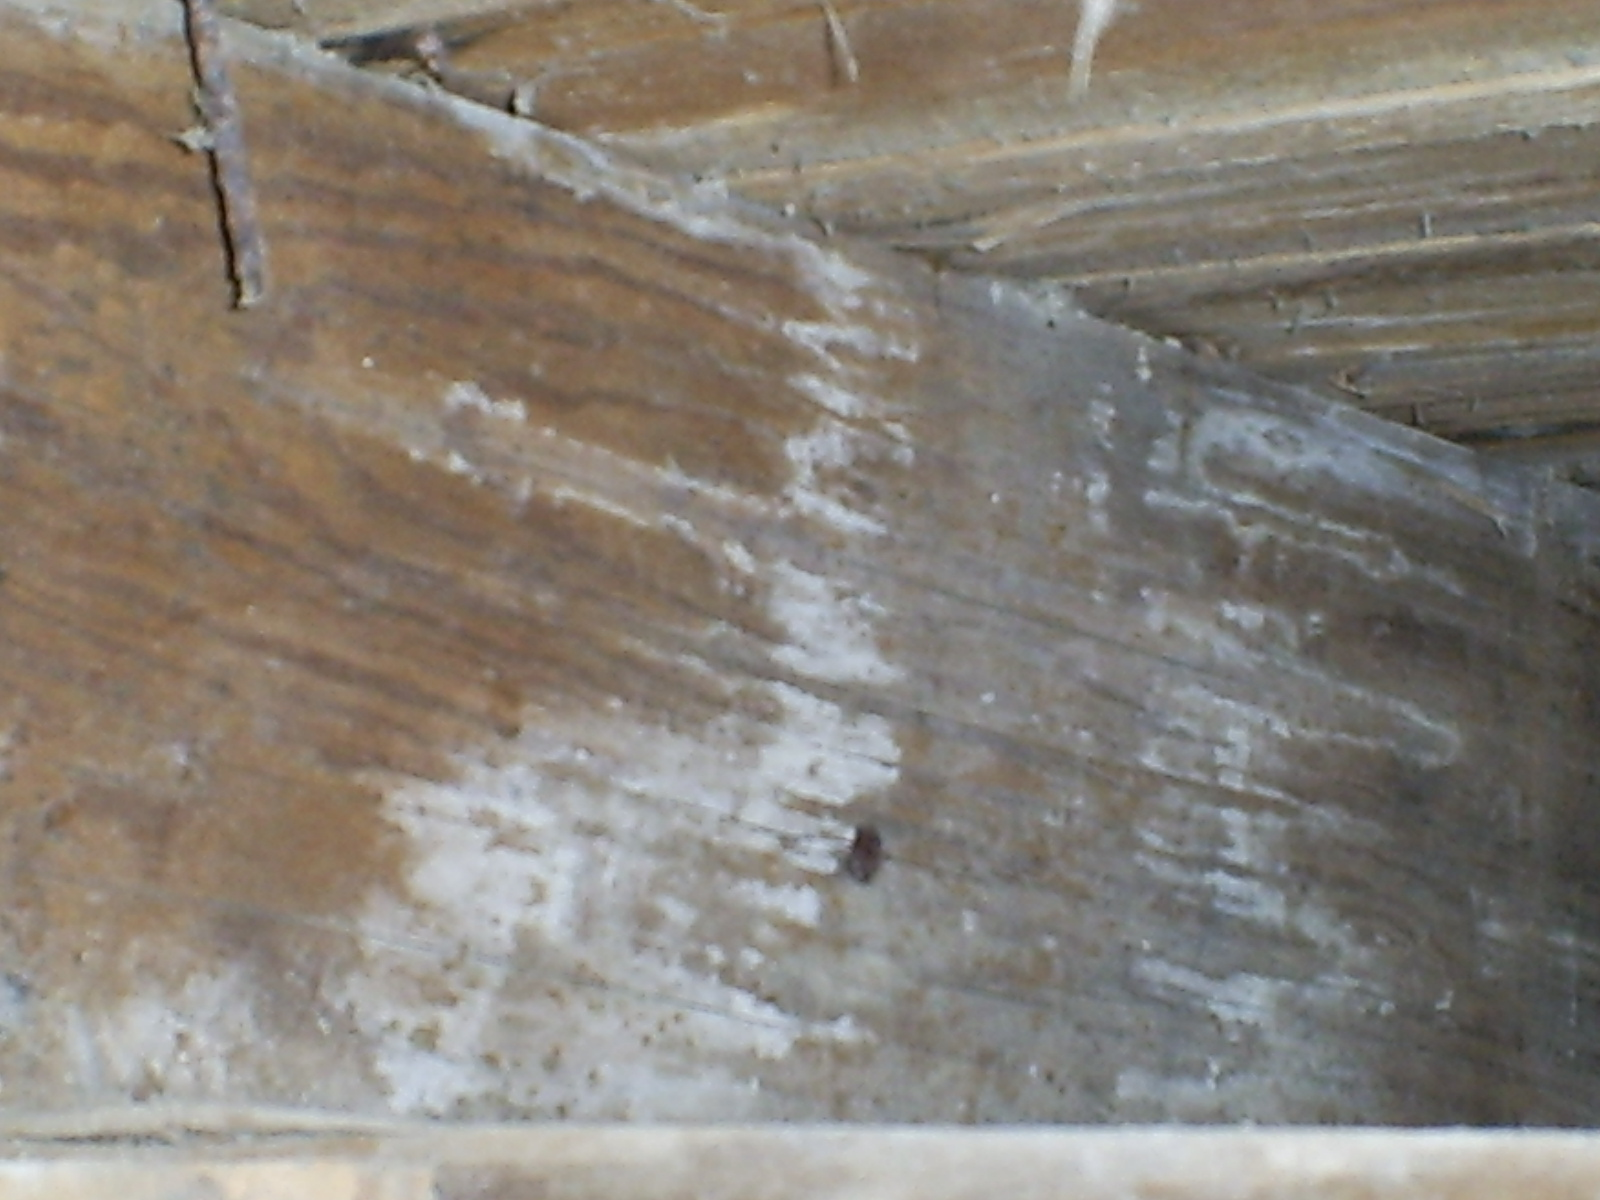 Museum Building Infested With Mold The Douglas Fairbanks